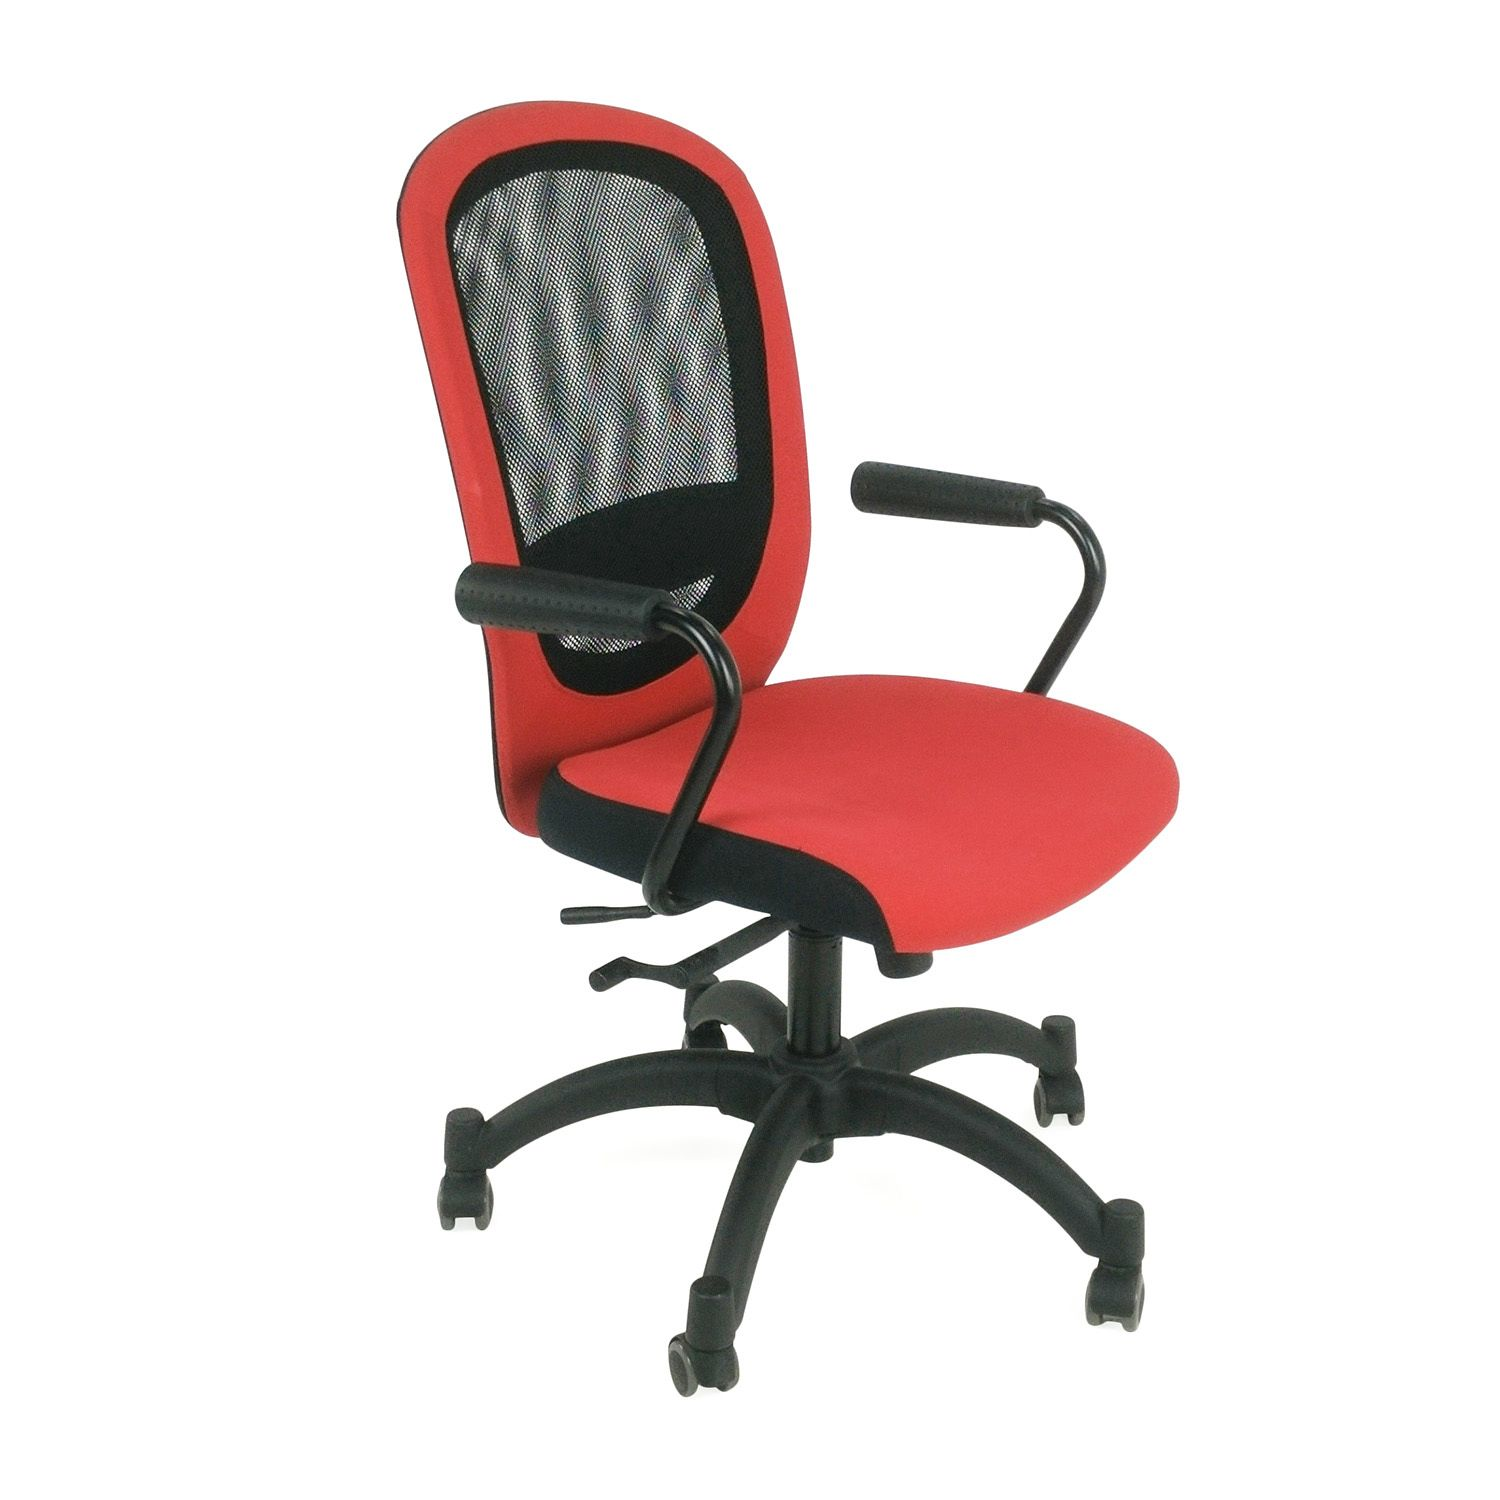 Superbe 2018 Ikea Mesh Office Chair   Home Office Furniture Sets Check More At  Http://adidasjrcamp.com/99 Ikea Mesh Office Chair  Real Wood Home Office Furniture/